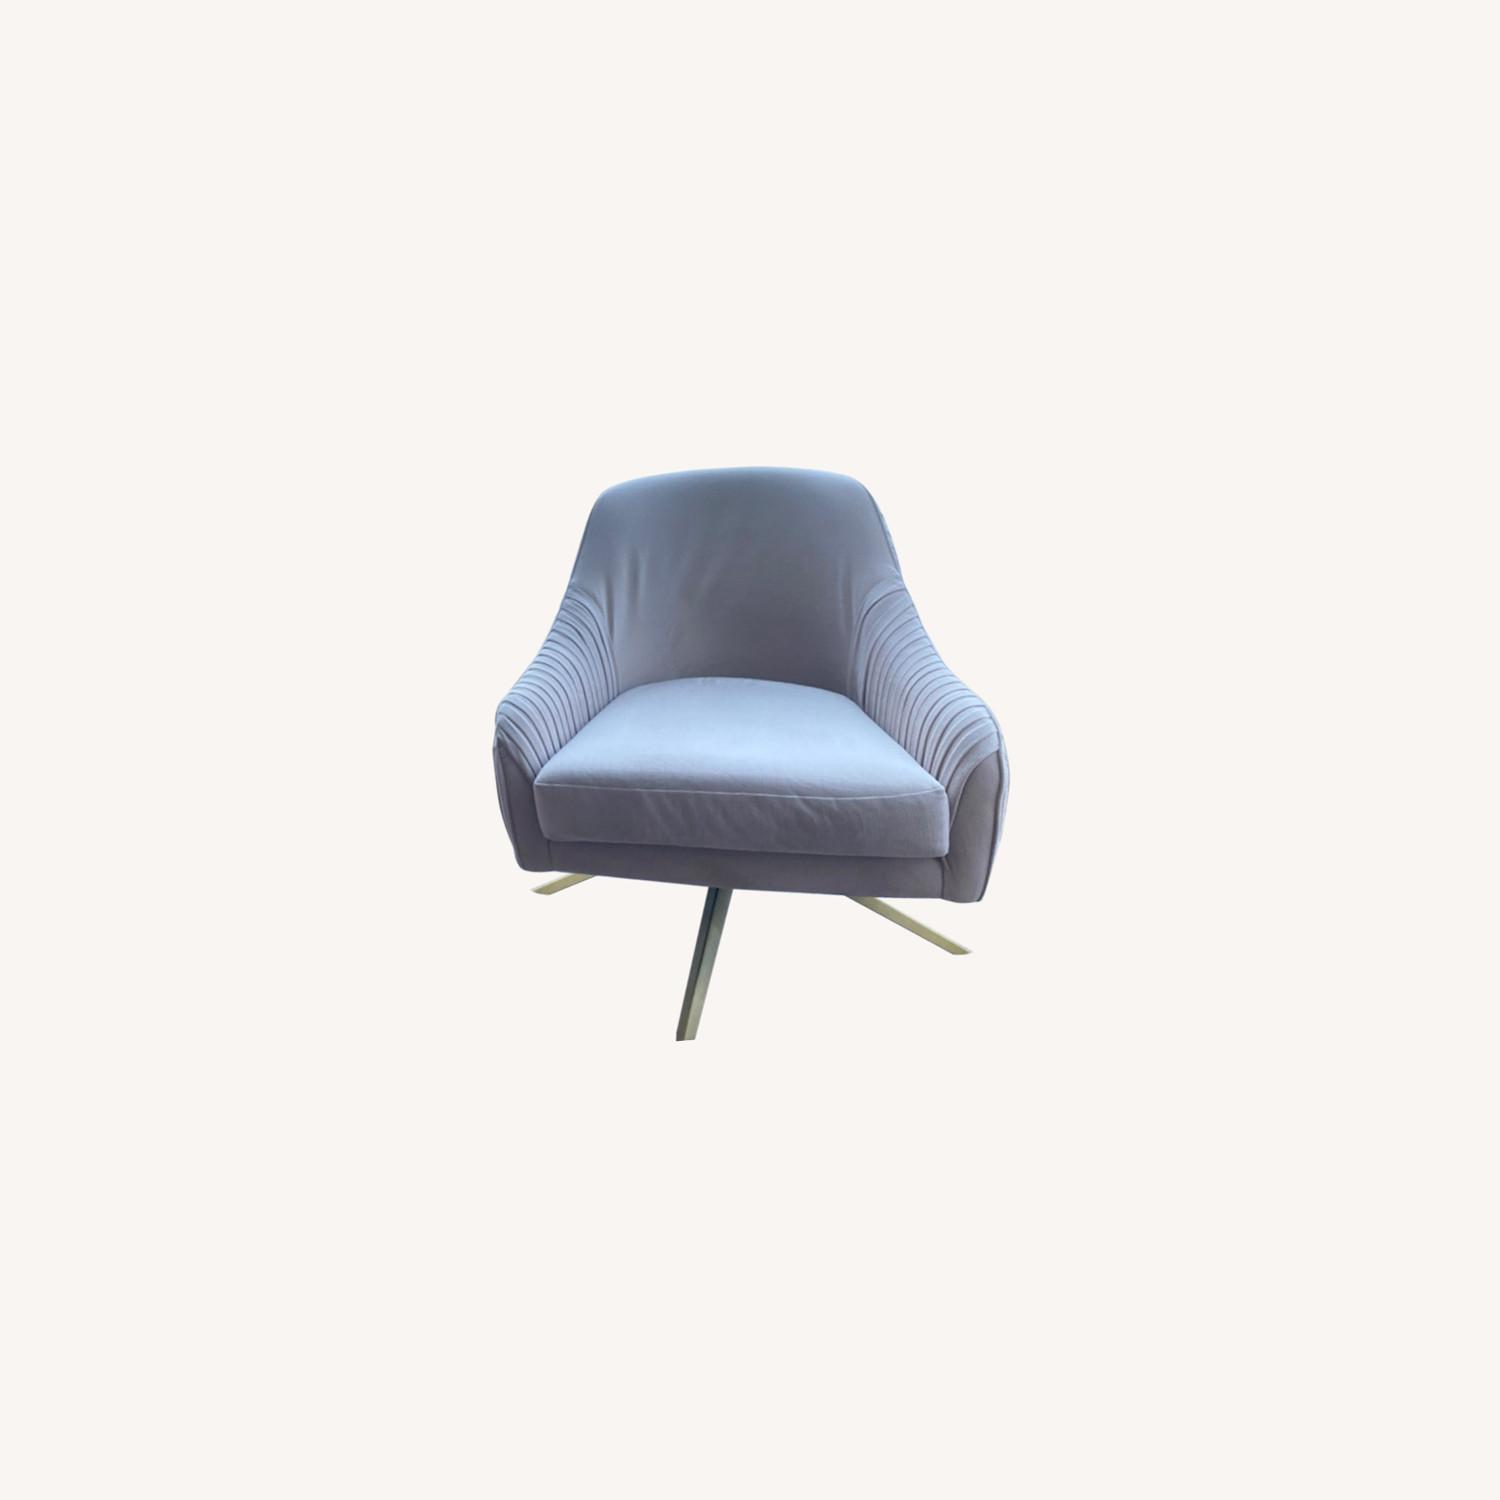 West Elm Blush Chairs - image-0